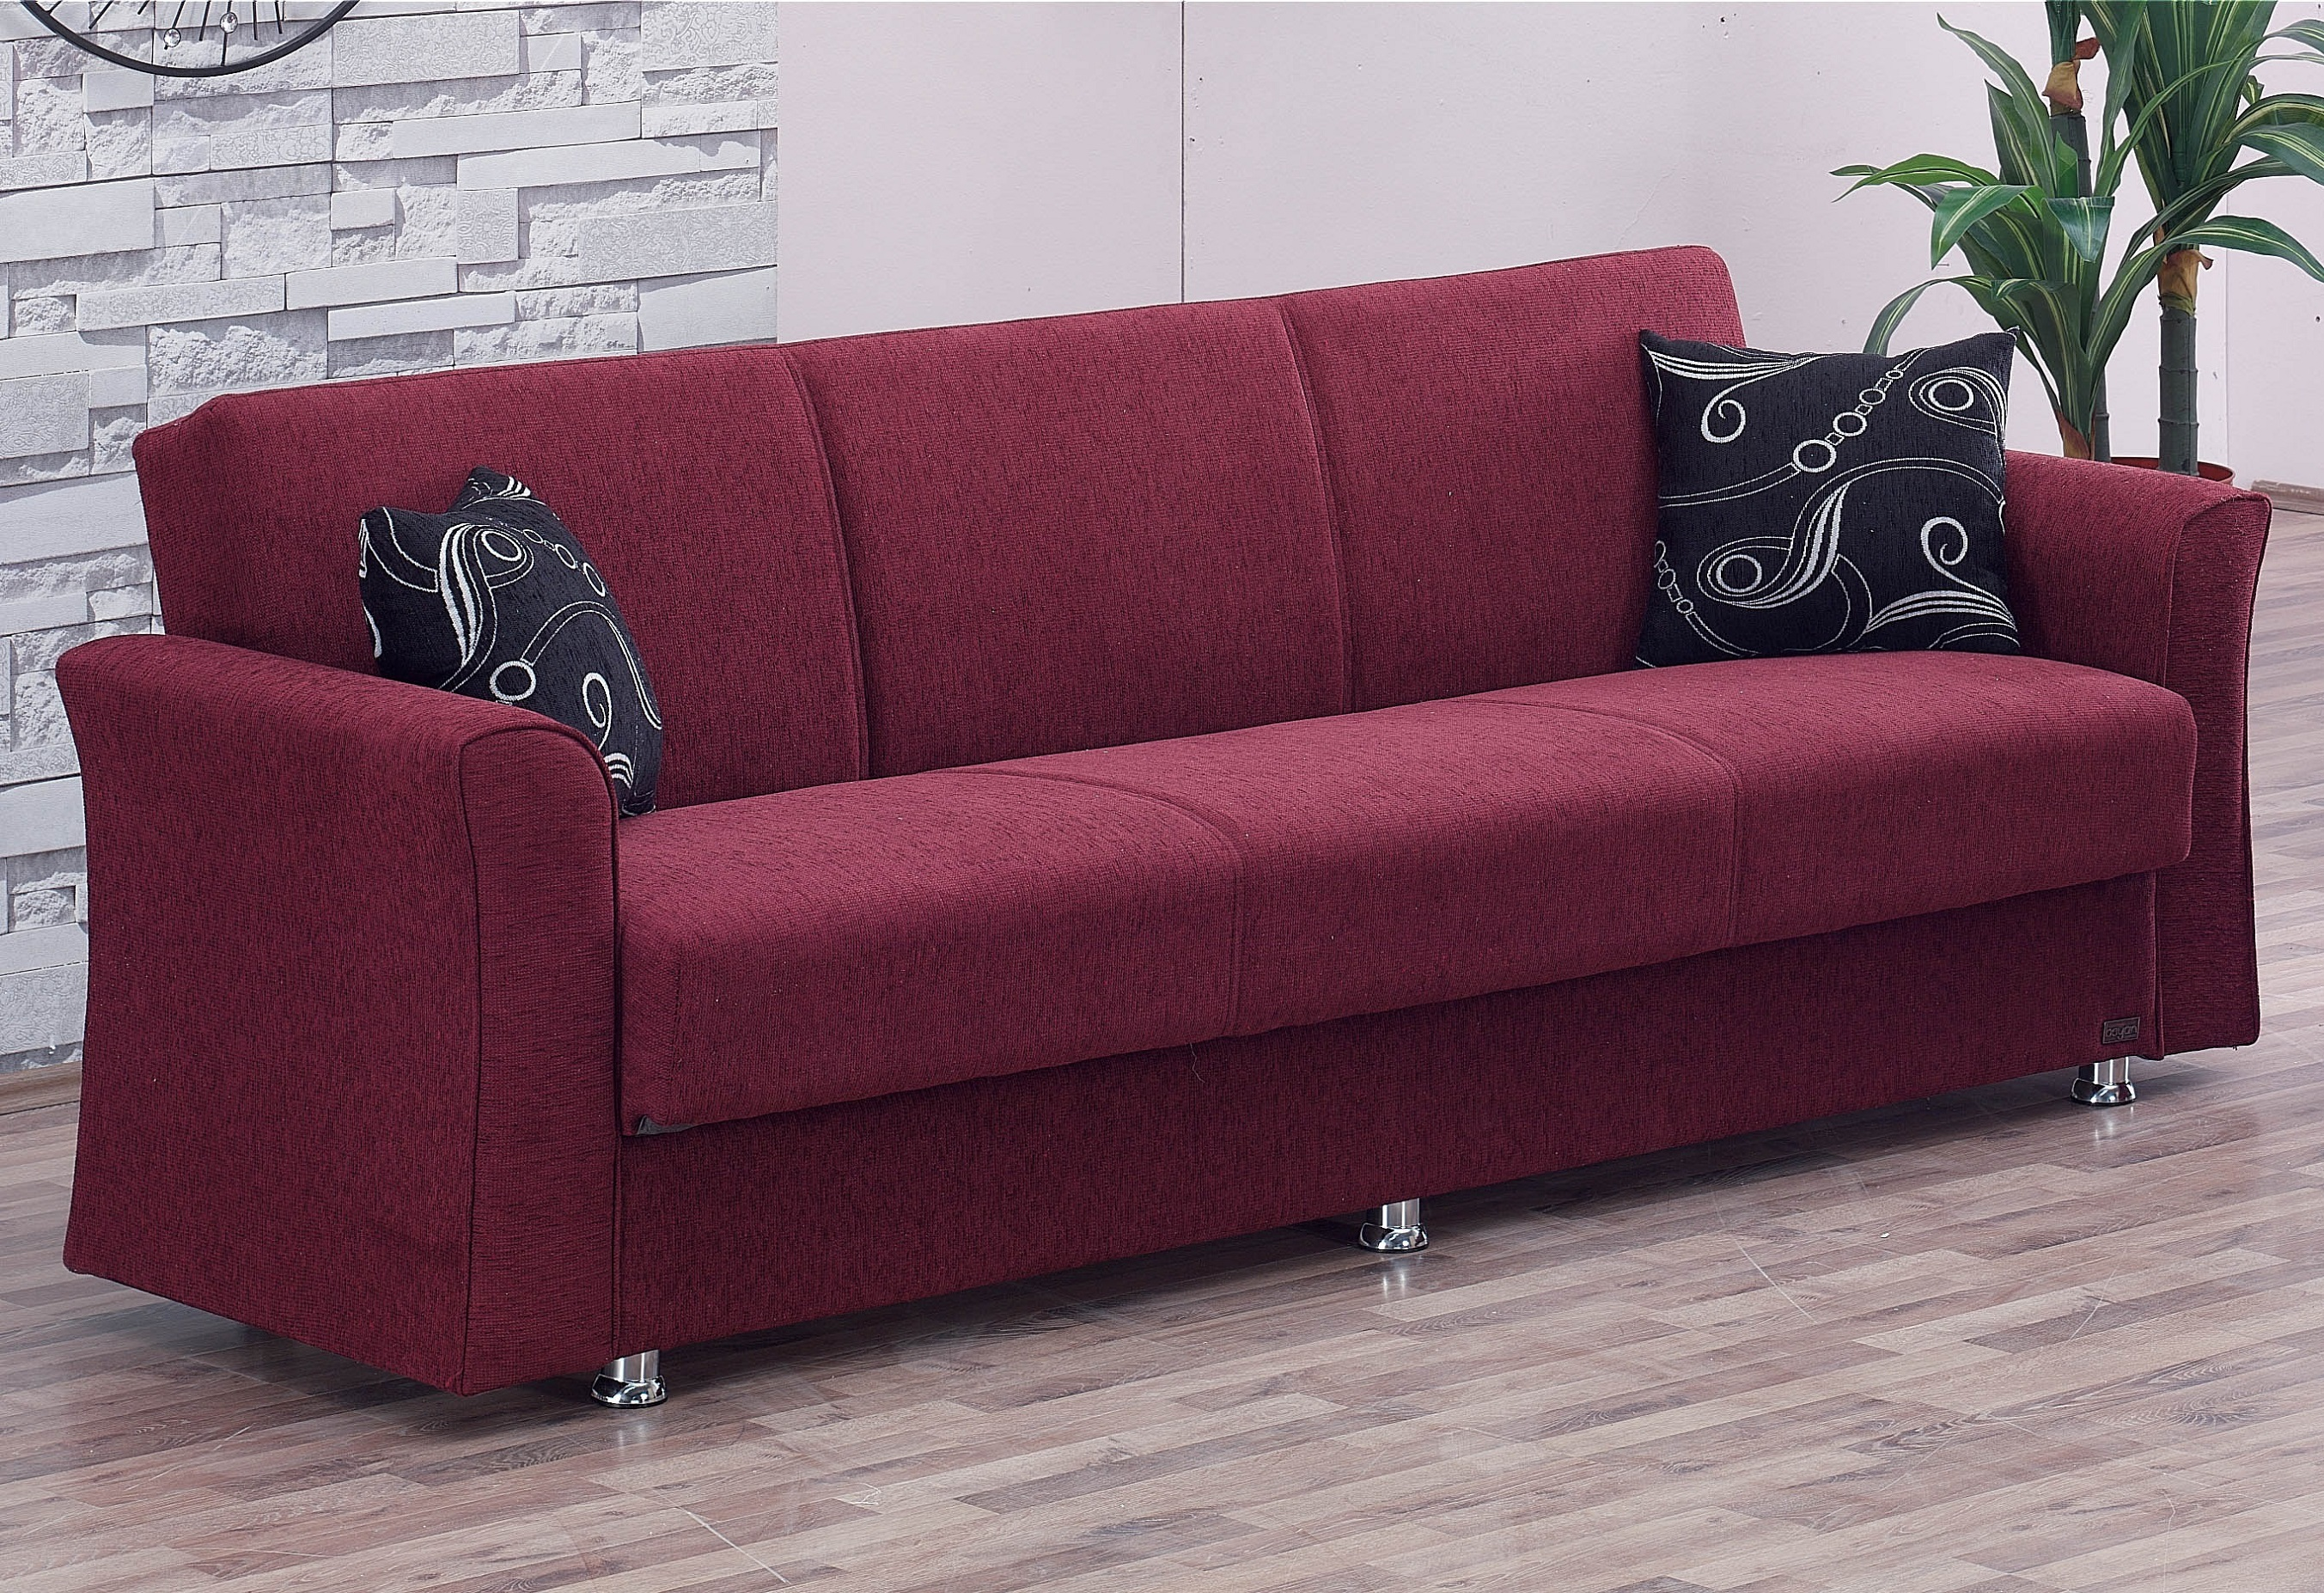 Most Popular Sofa Beds Sleeper Sofas Houzz - Sofa bed for everyday sleeping